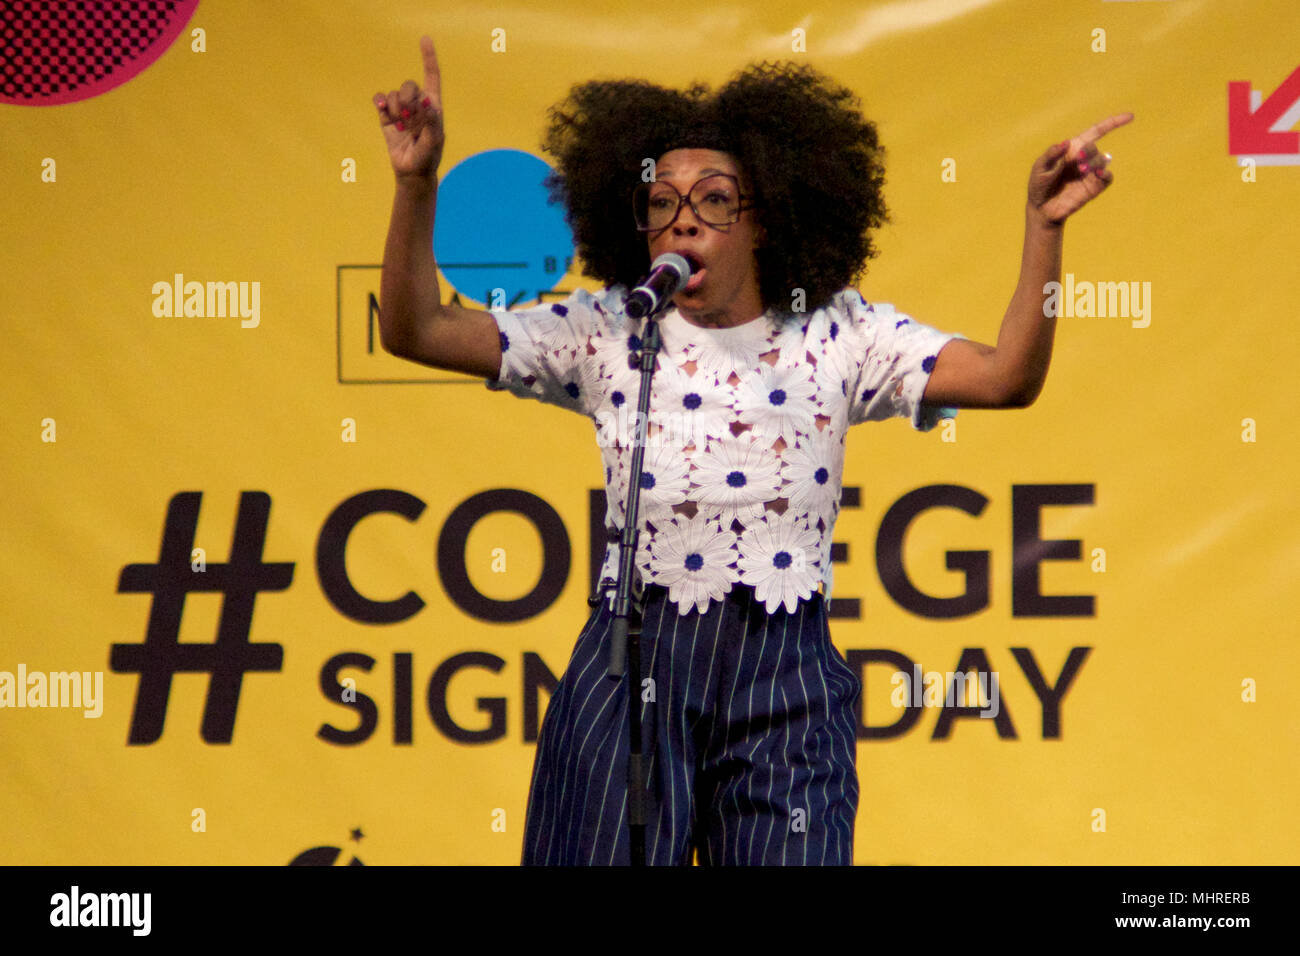 Philadelphia, USA. 2nd May 2018; Donn T on stage as Michelle Obama is joined by students, stars, performing artists and athletes for the fifth  annual College Signing Day, hosted by Reach Higher, at Temple University's Liacouras Center in North Philadelphia, on May 2, 2018. The Former First Lady is joined by 7.000 students and (on stage) stars, performing artists and athletes including Bradley Cooper, Rebel Wilson, Zendaya, Robert De Niro, Camila Cabello, Questlove, Anthony Mackie and Janelle Monae. Credit: Bastiaan Slabbers/Alamy Live News - Stock Image